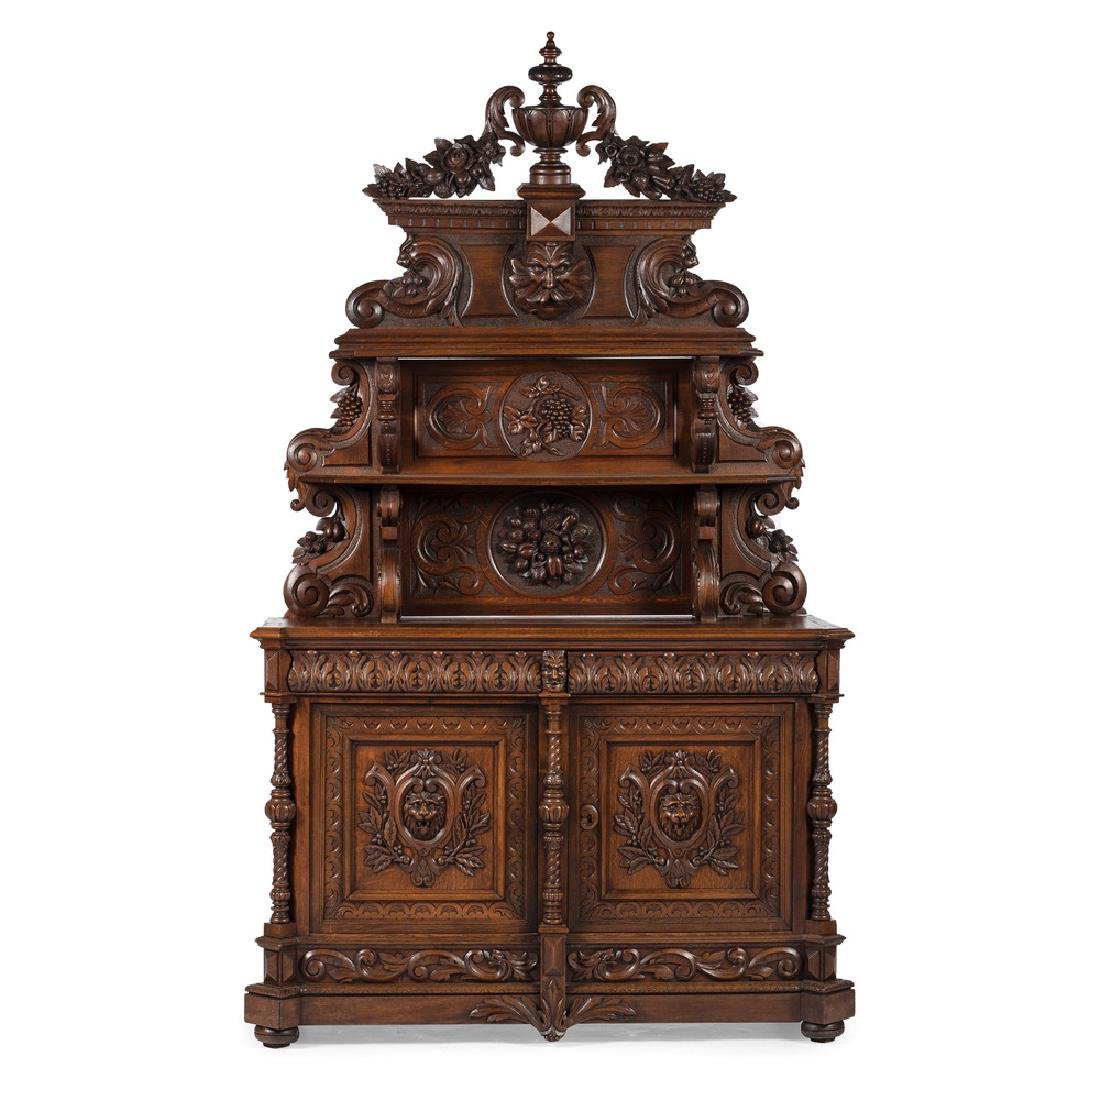 Monumental Renaissance Revival-Style Carved Sideboard